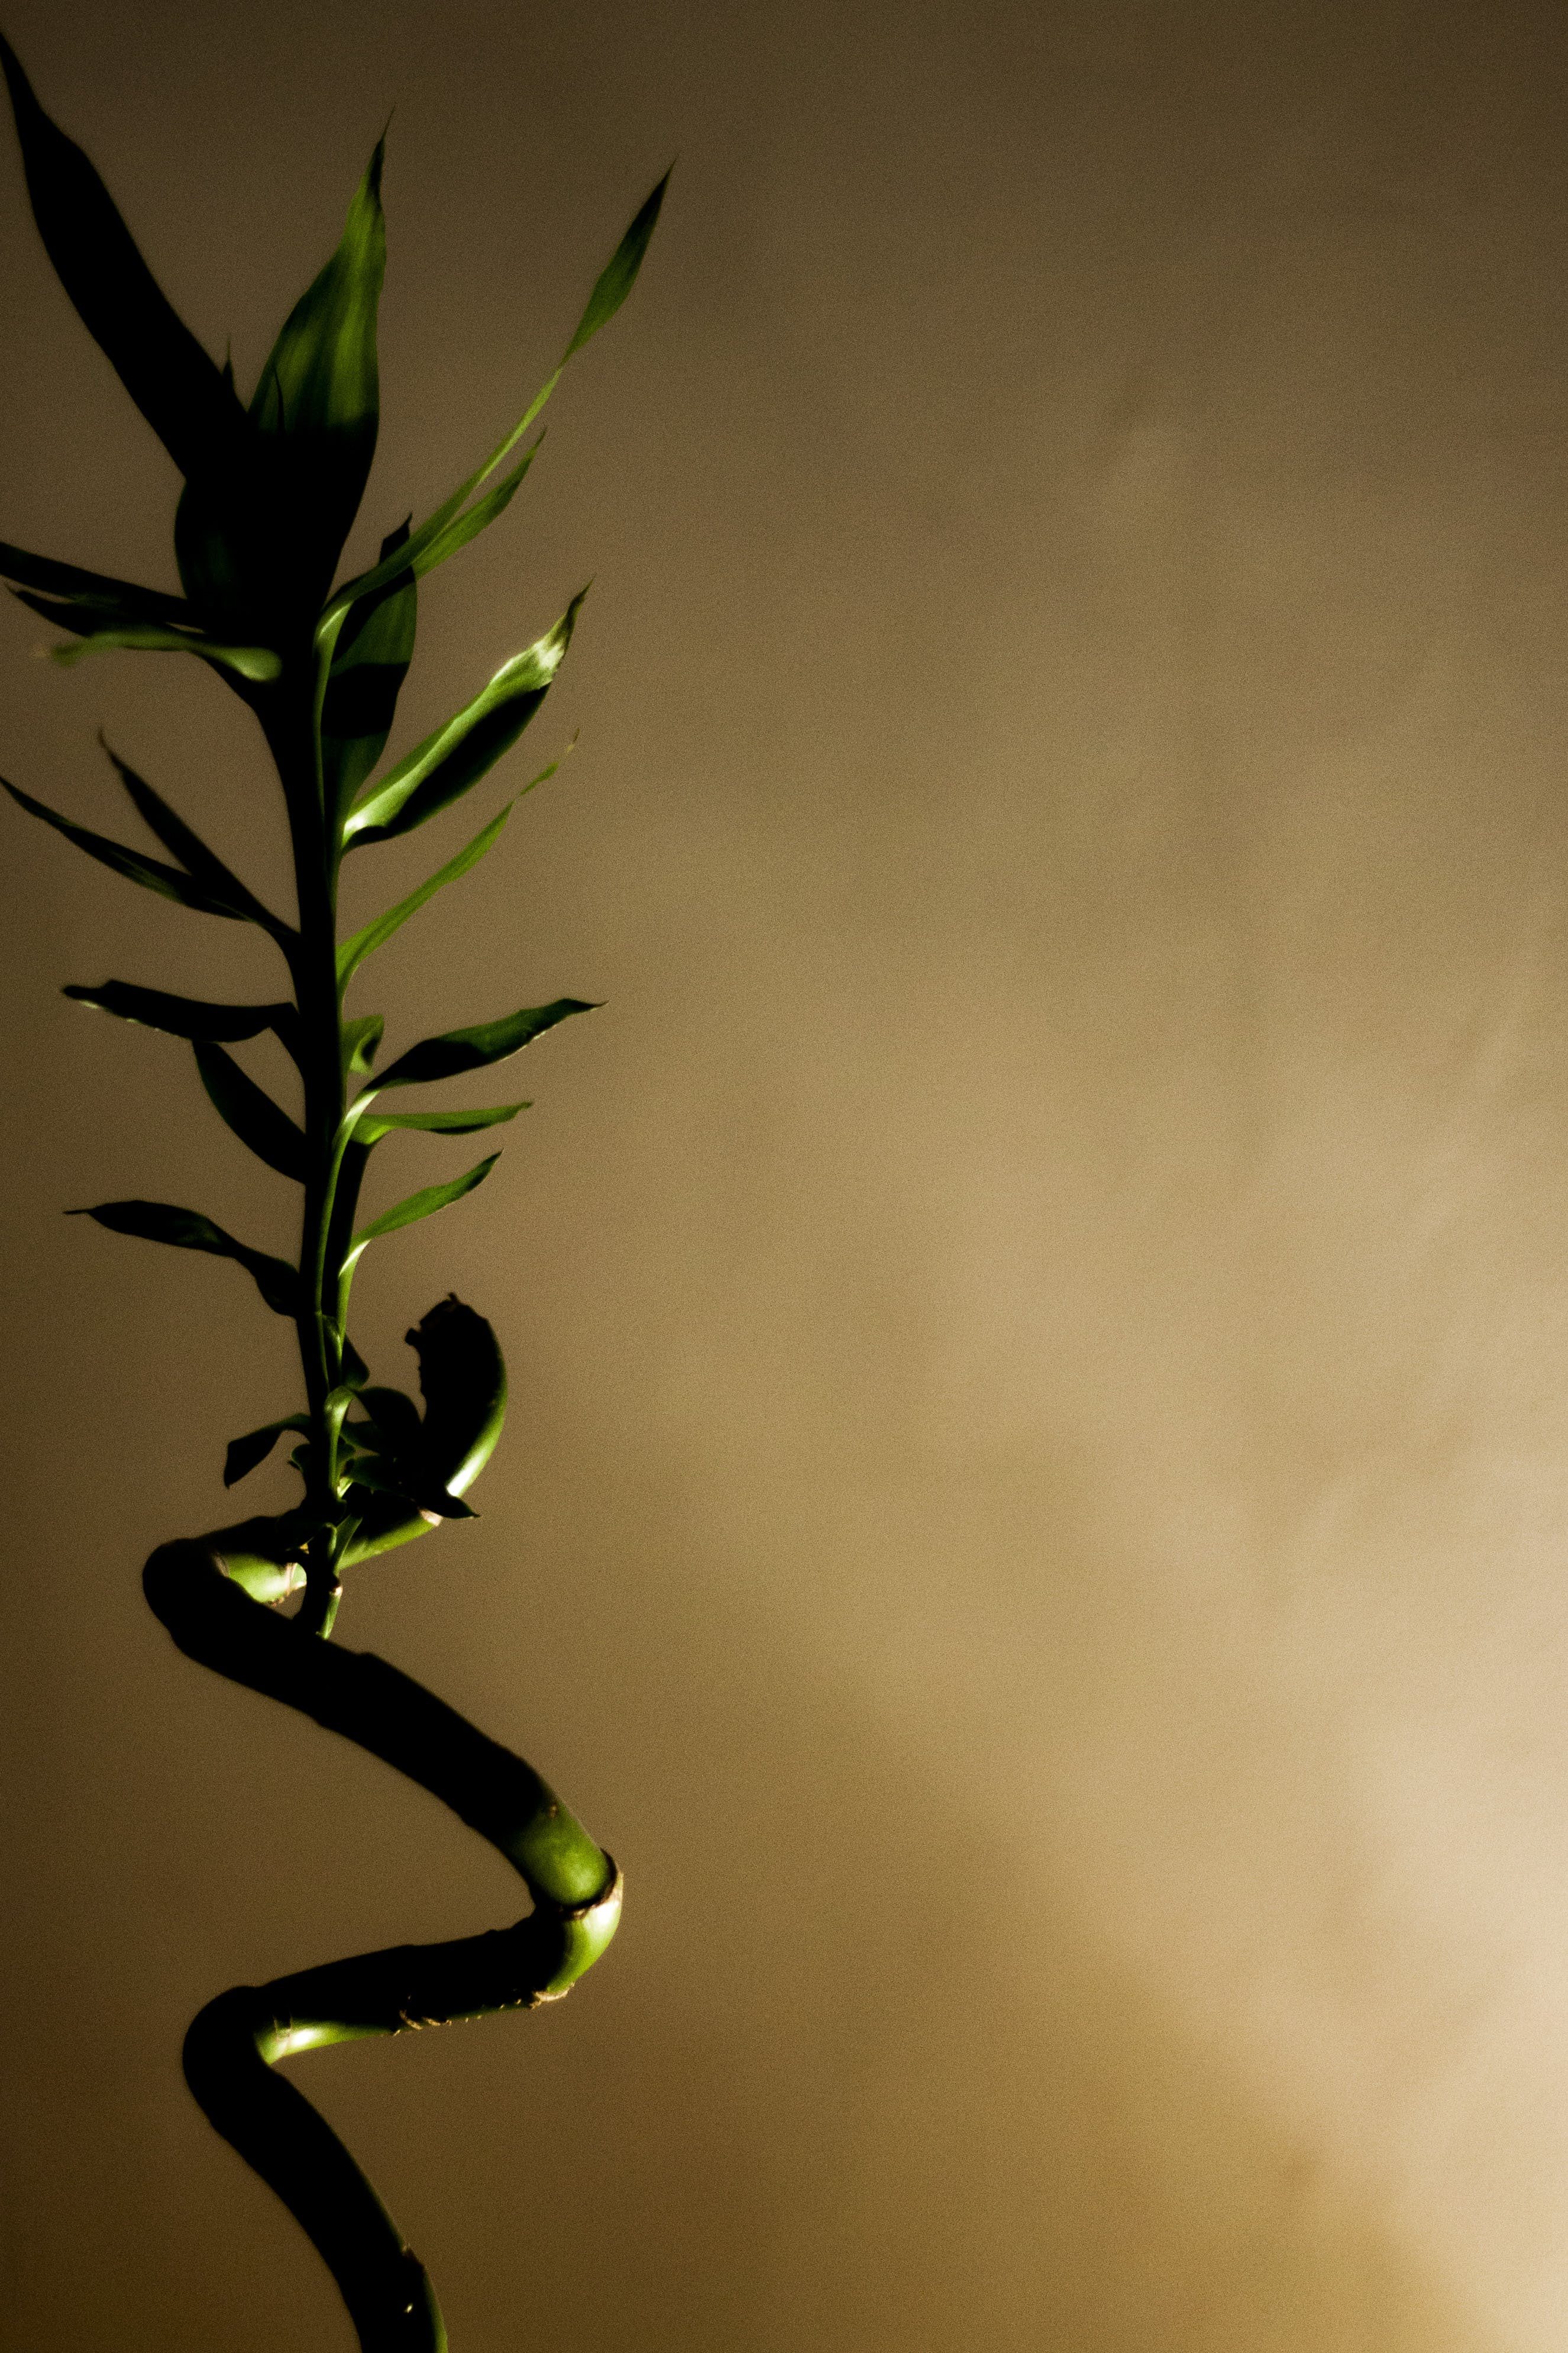 Free stock photo of bamboo, contrast, green, life